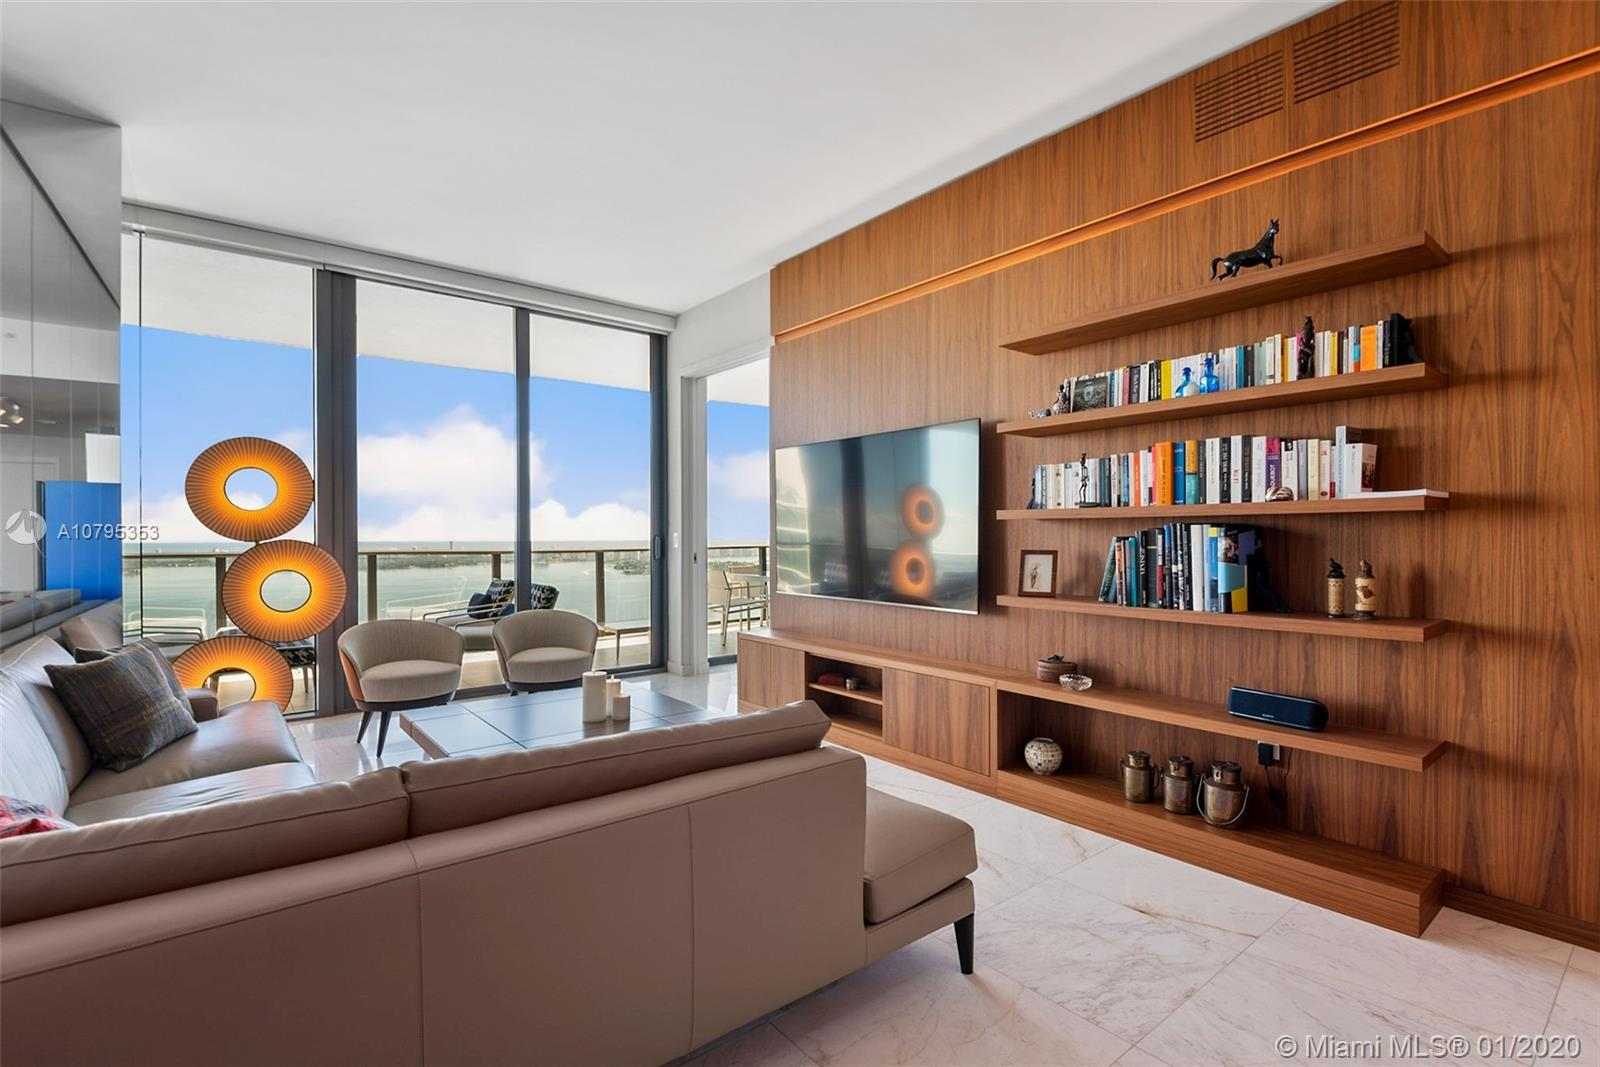 GranParaiso 4904. This is the highest floor 2 bedrooms in the 04 line. One of the Best line in the b